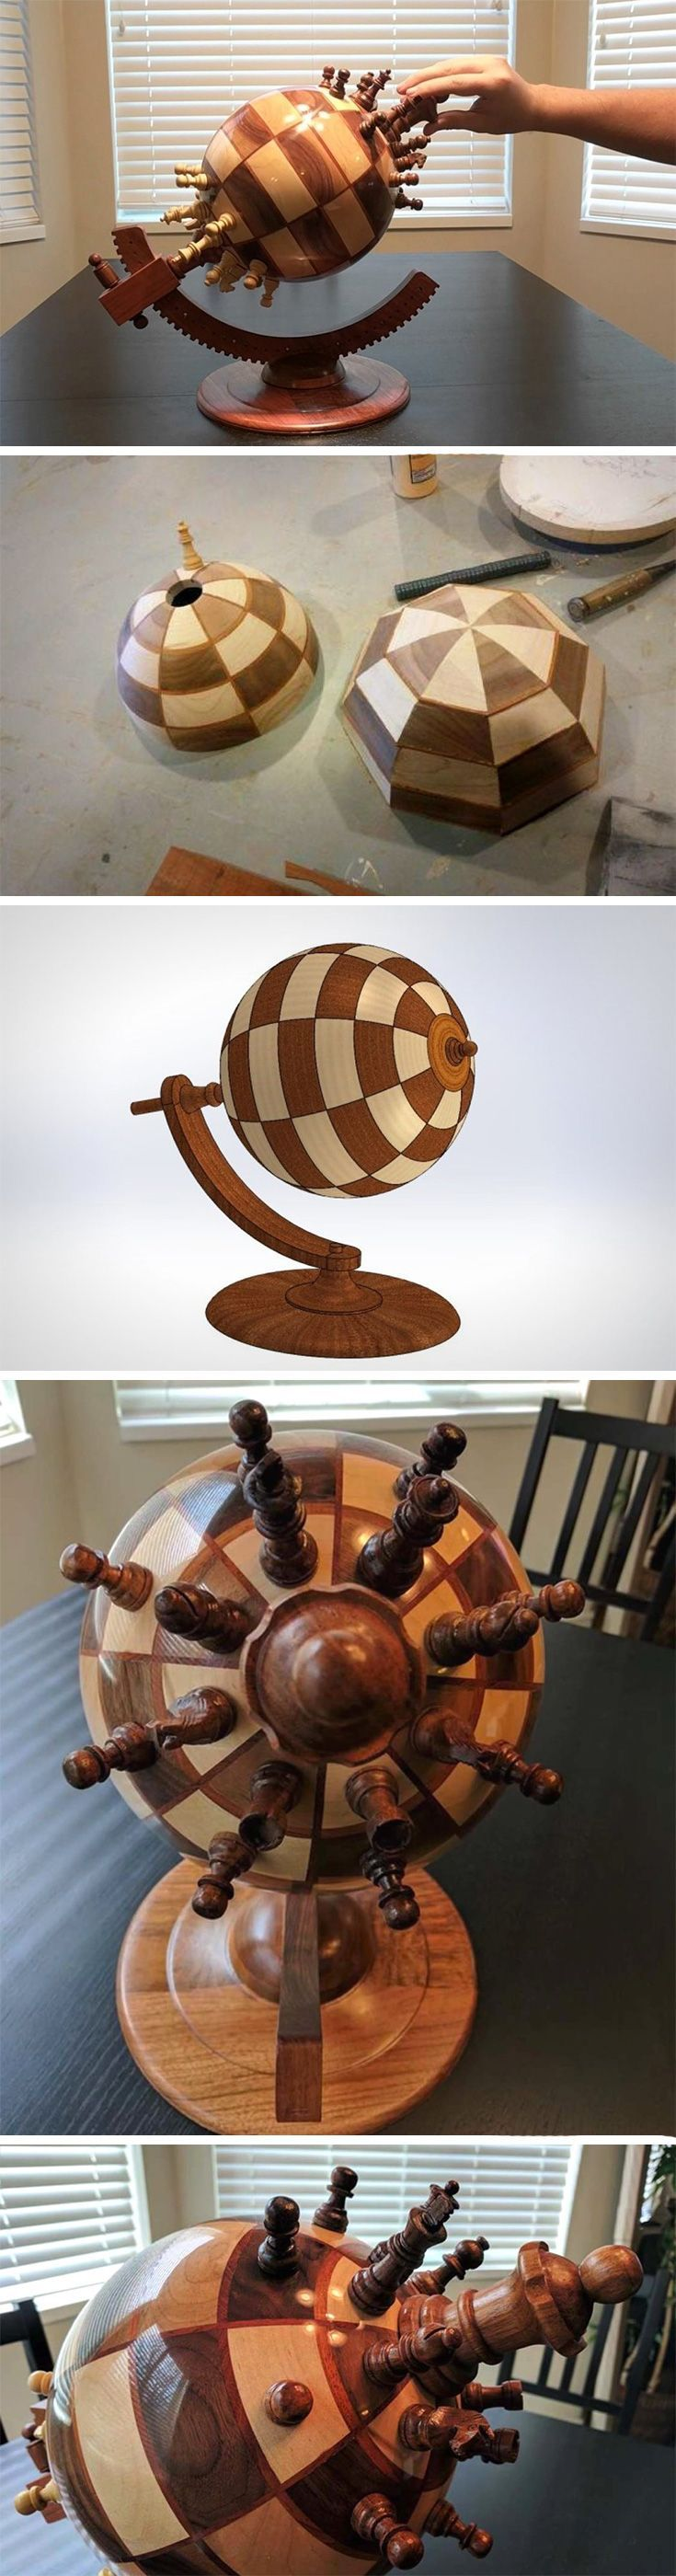 There's something so metaphorical about this spherical chess board! Like countries on our planet constantly picking sides and going on war, this spherical chessboard allows two teams to play against each other in a rather strangely warped, yet exciting planet-ish dimension. FREE: Access Our Brand New WoodCrafting Guide